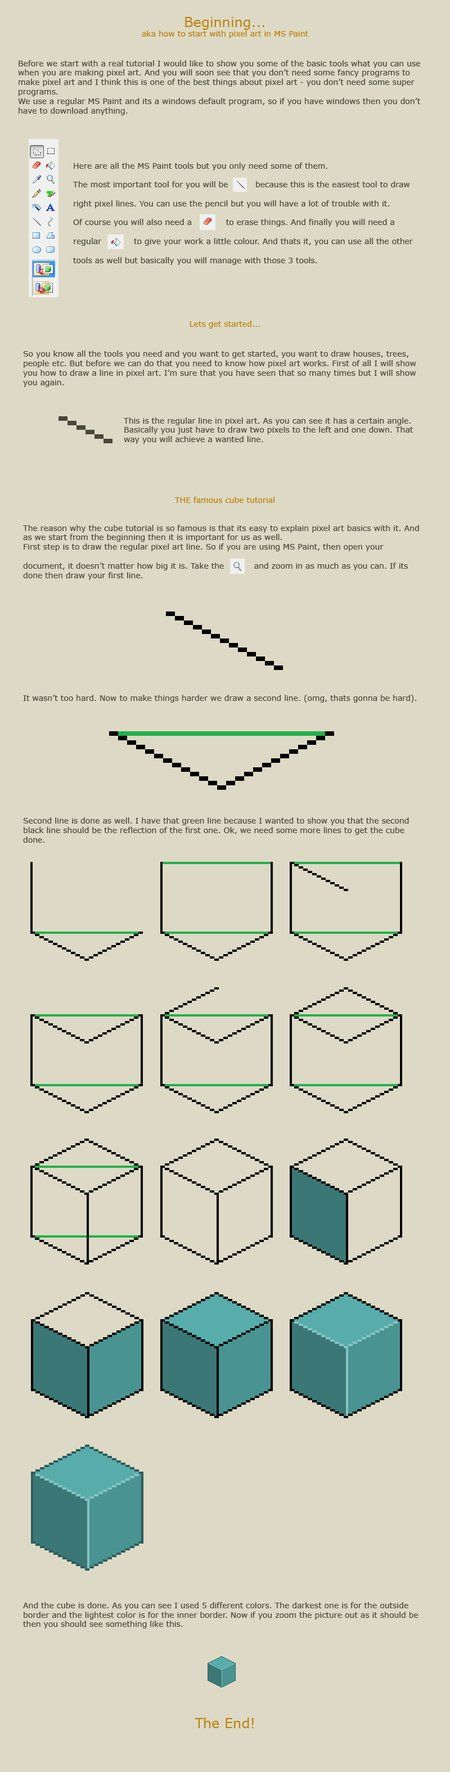 How to start with pixel art by vanmall http://vanmall.deviantart.com/art/How-to-start-with-pixel-art-121520884